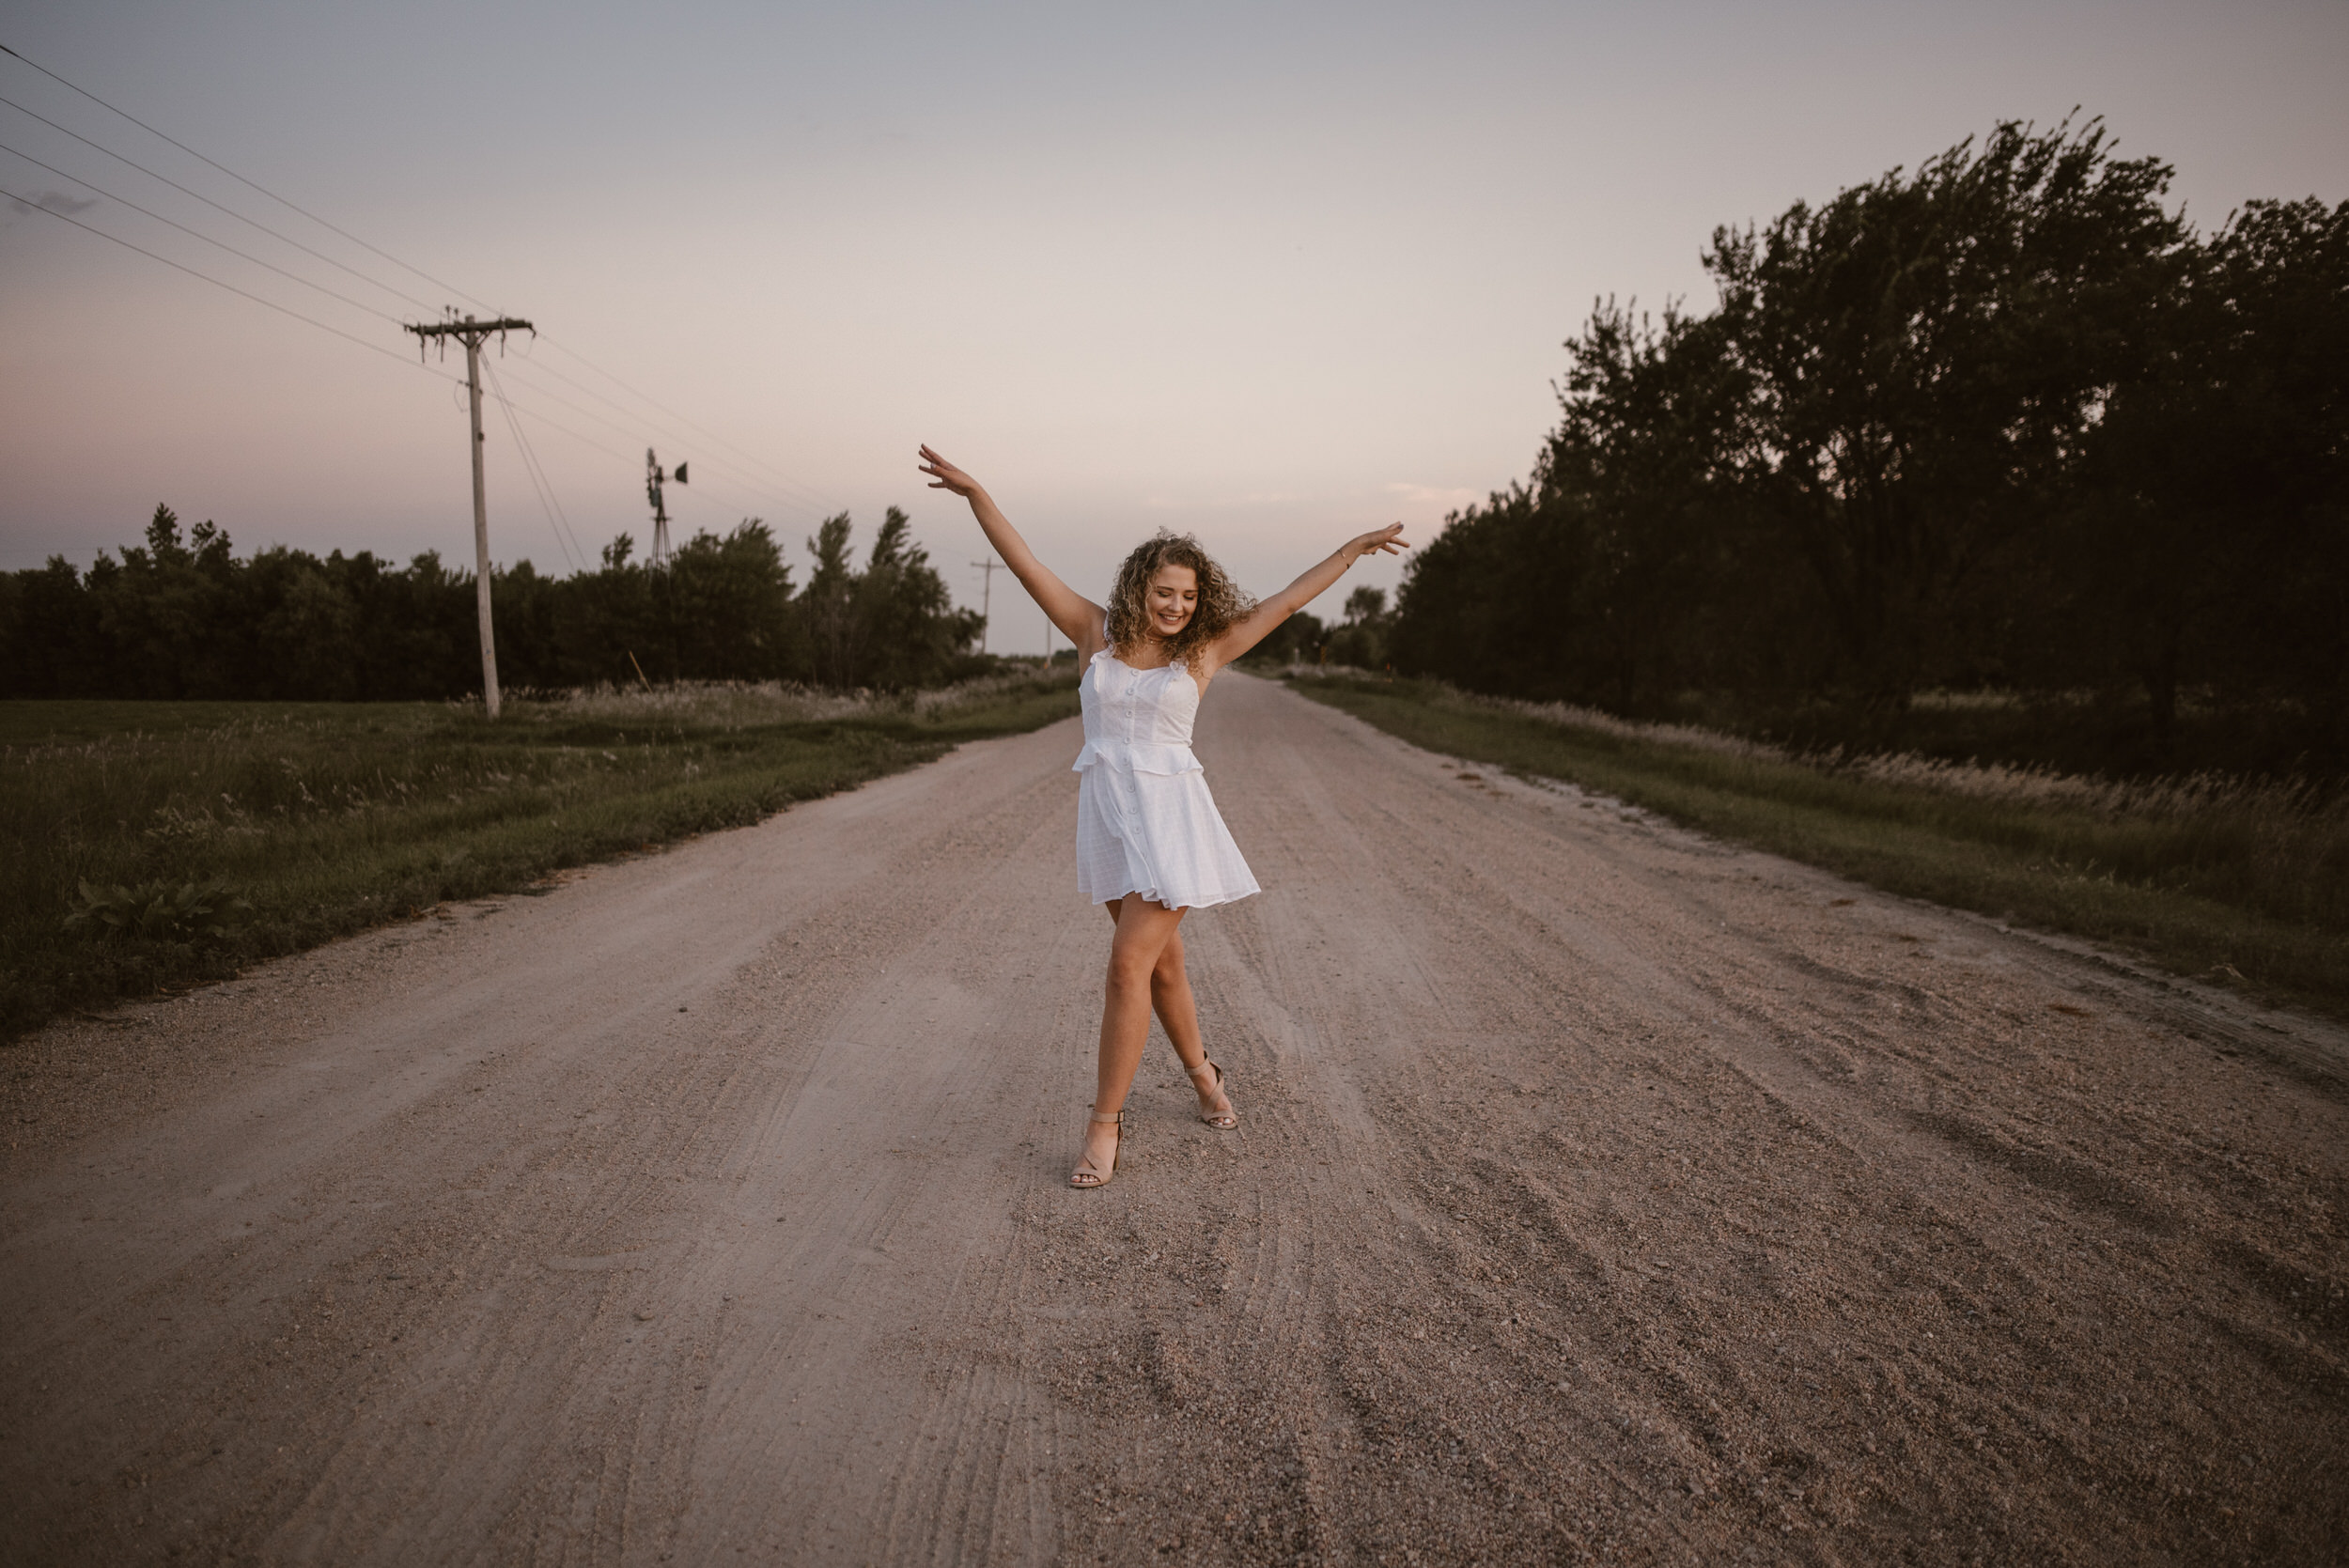 Kaylie-Sirek-Photography-York-High-School-Senior-029.jpg